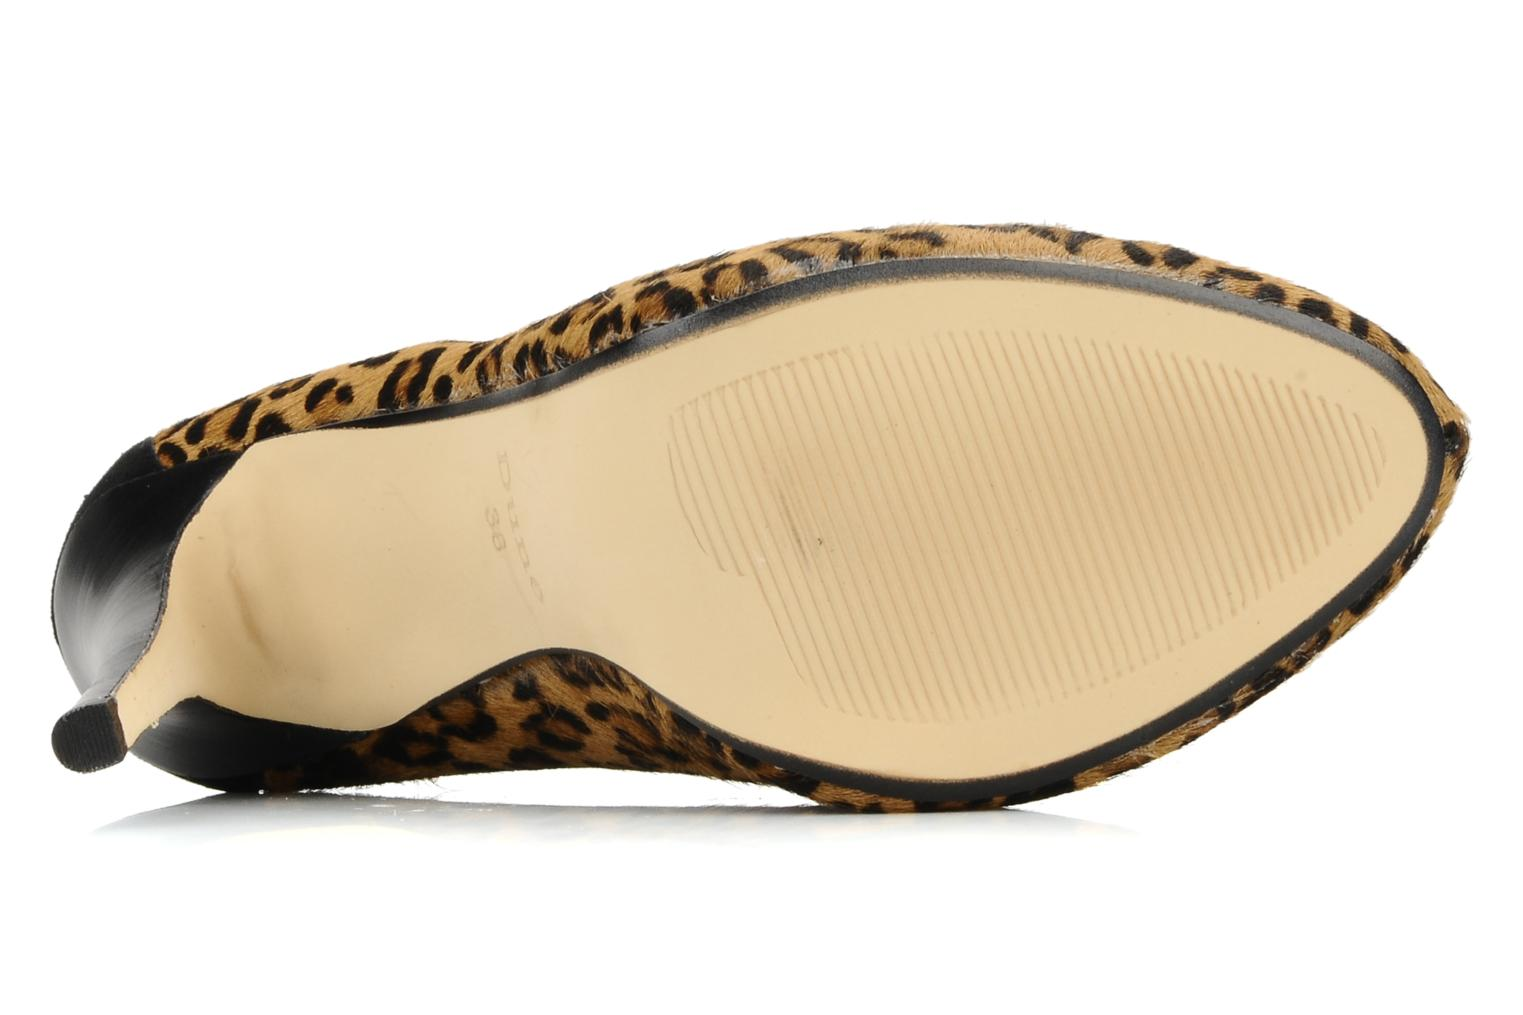 Hilly Leopard comb